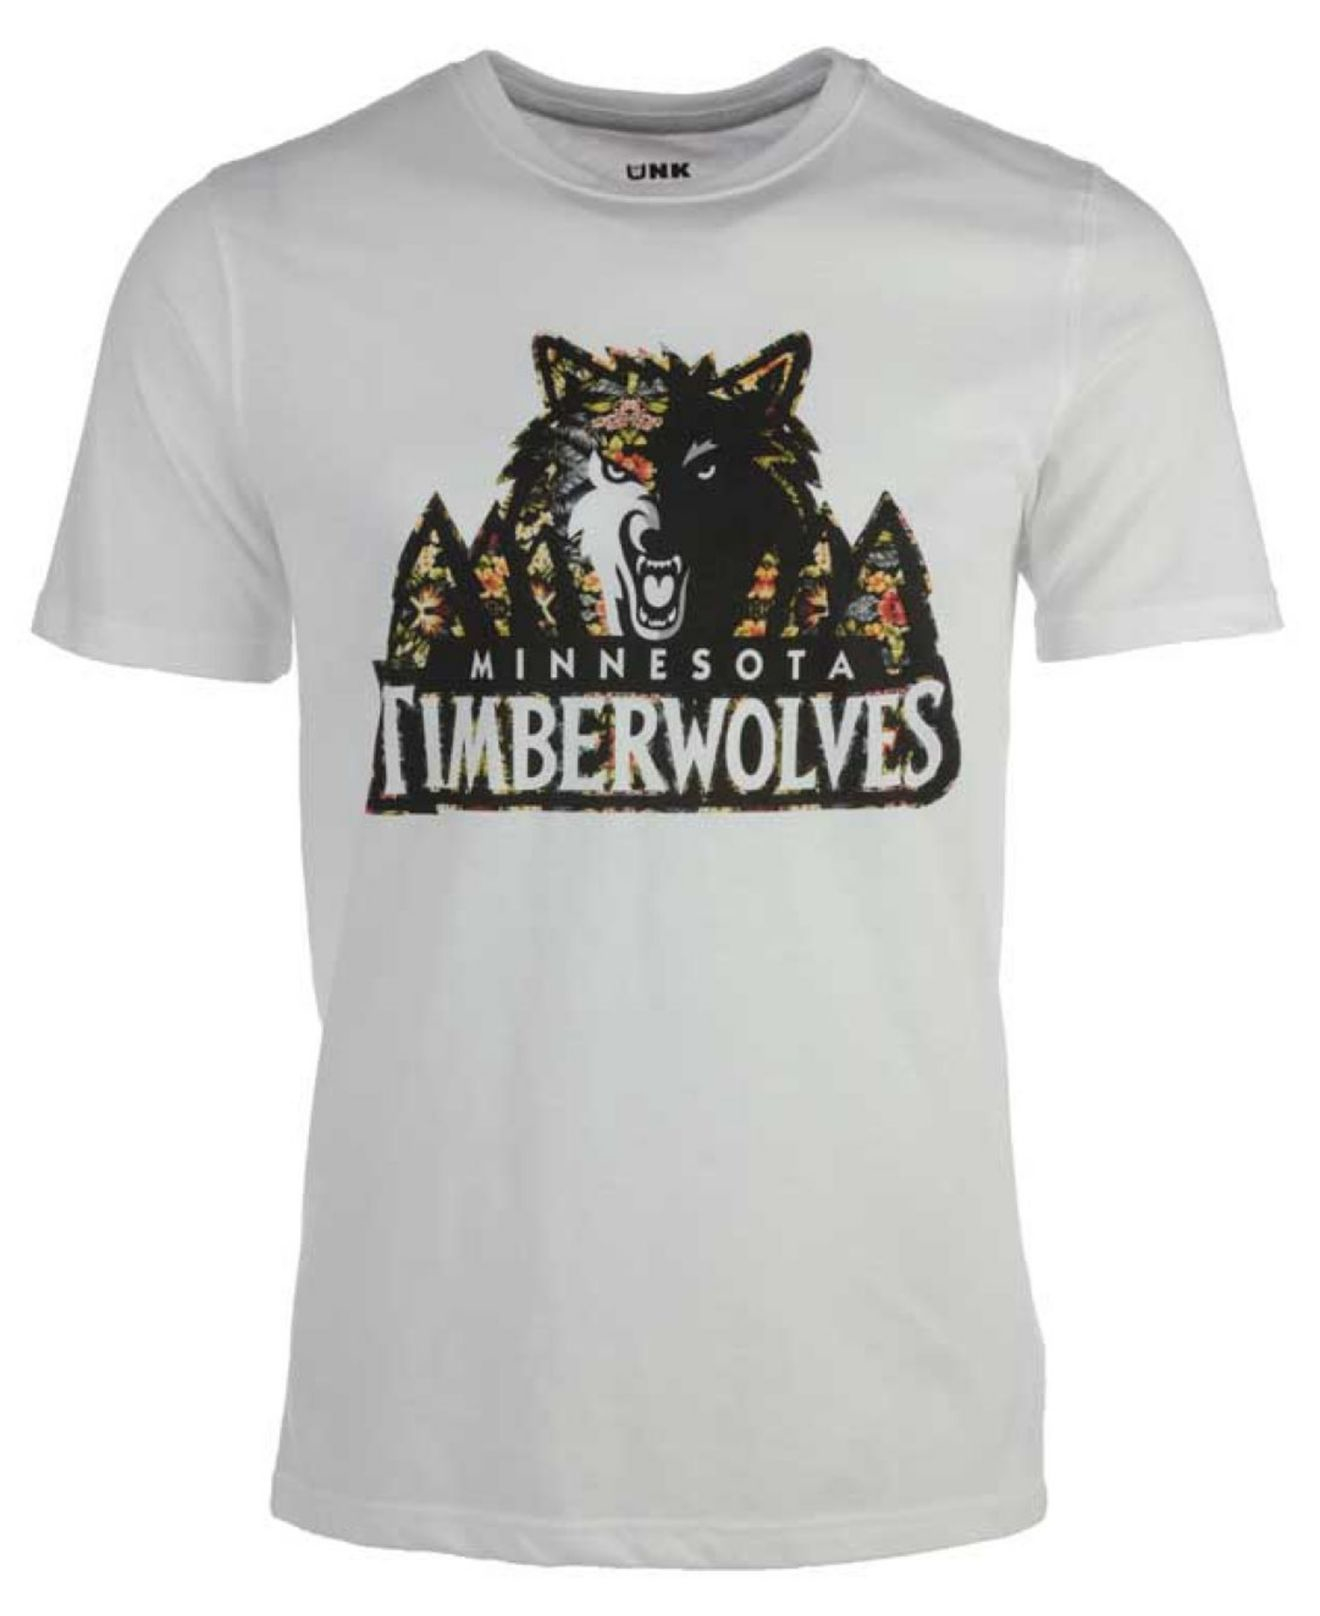 Unk men 39 s minnesota timberwolves floral joint t shirt in for Timberwolves new logo shirt